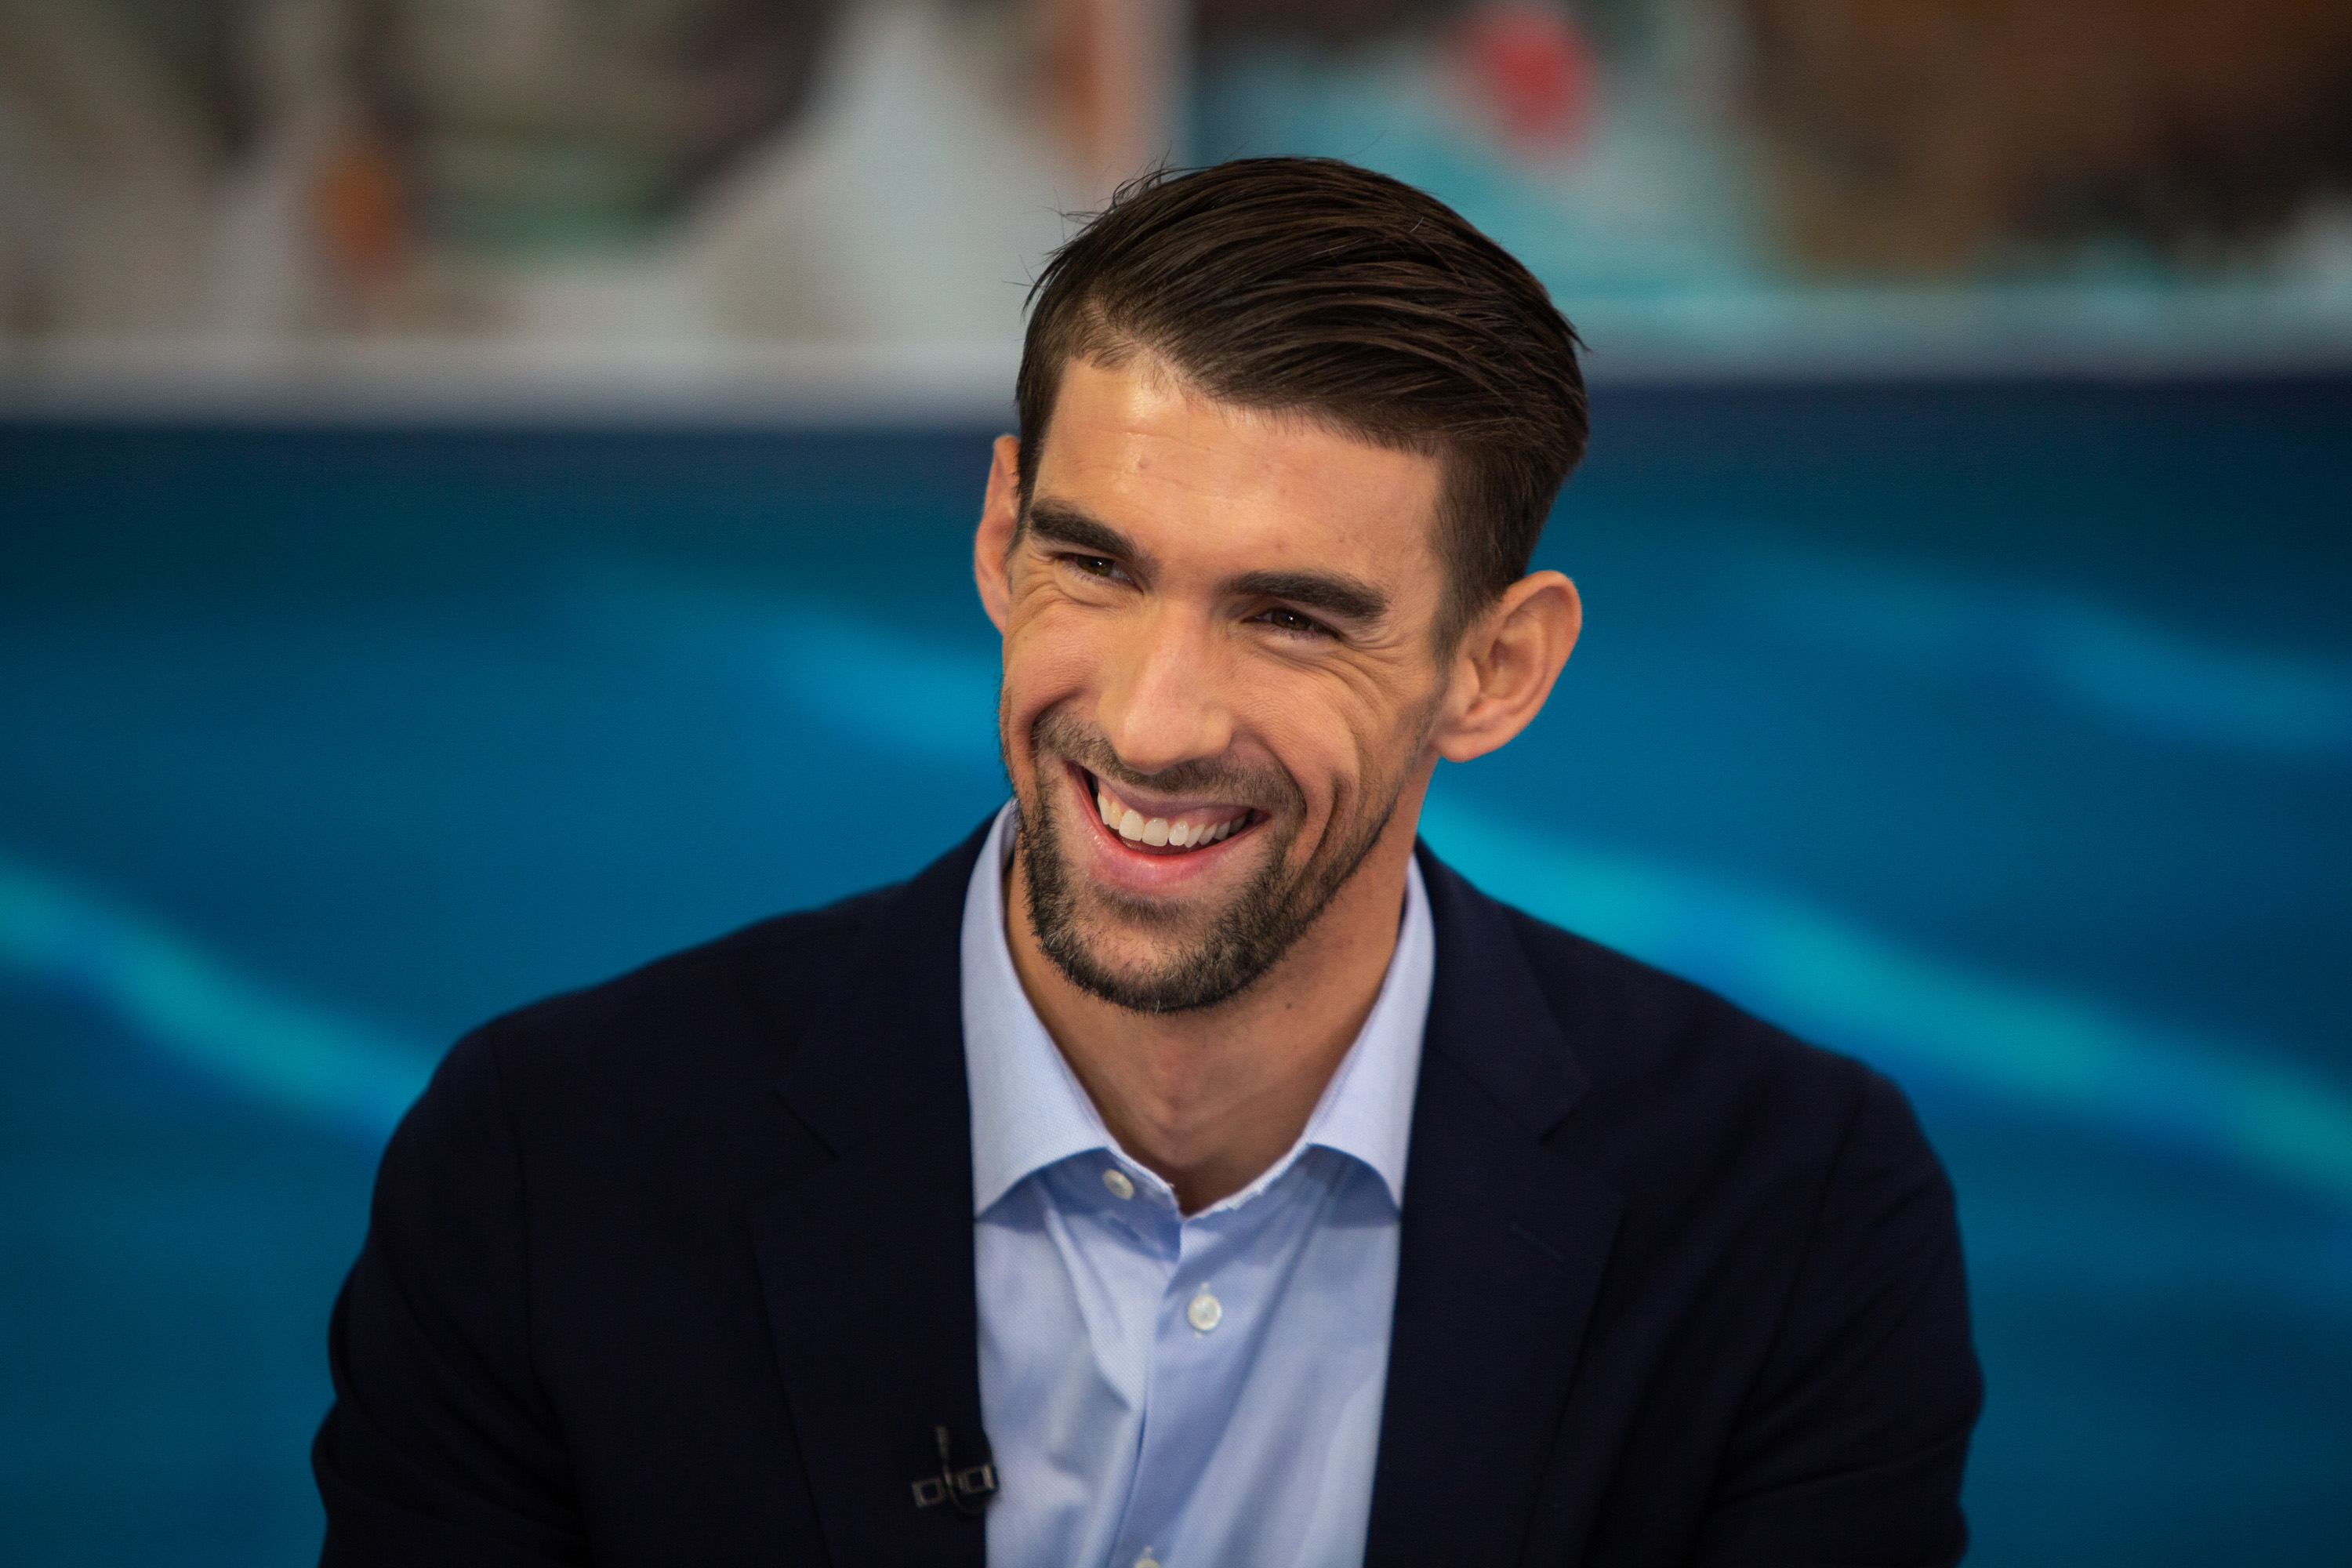 A retired Michael Phelps on a talk show